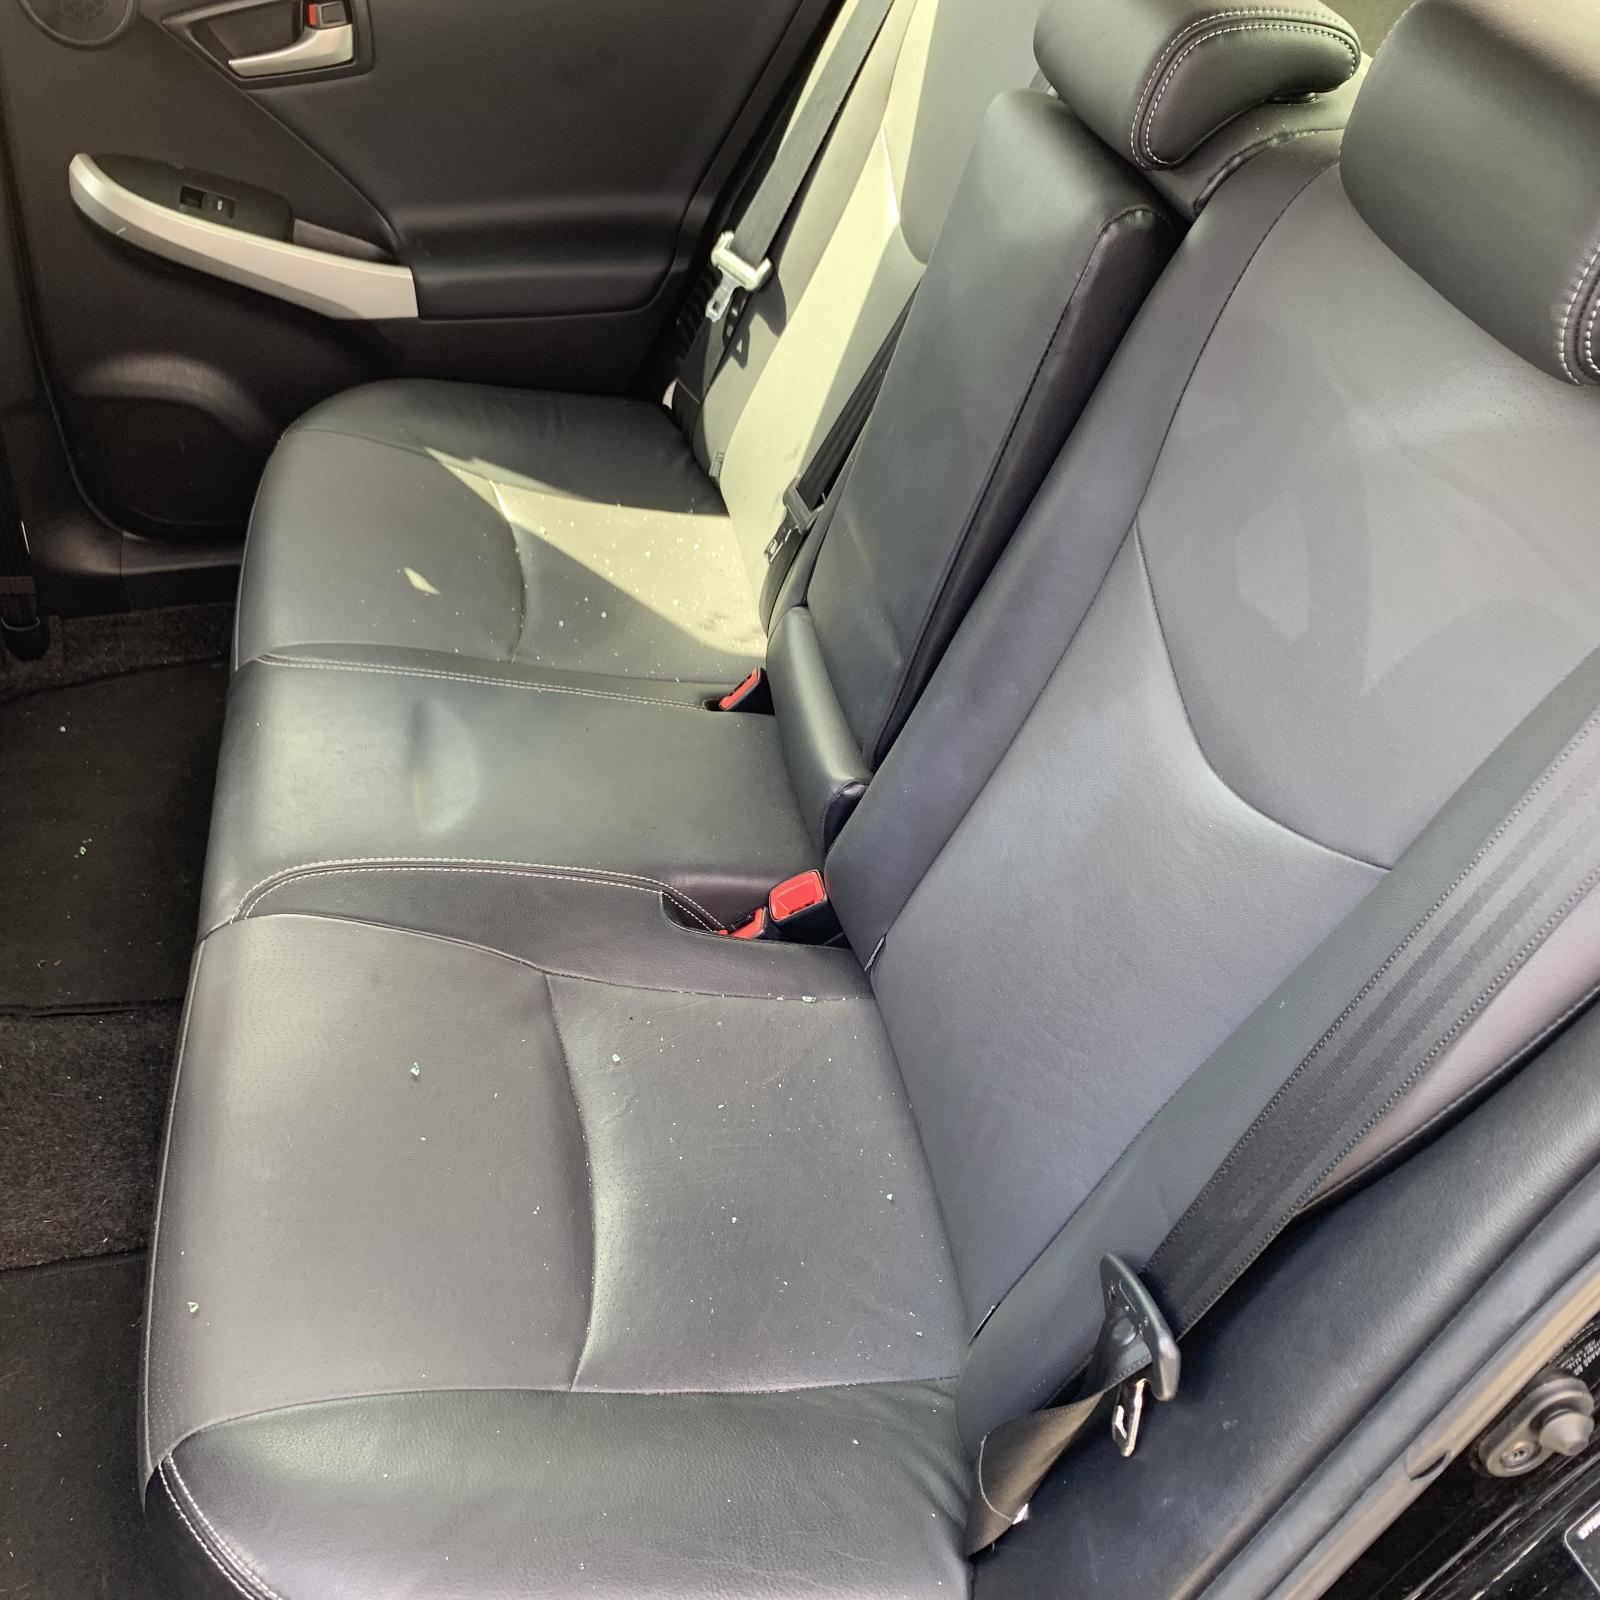 TOYOTA PRIUS, 2nd Seat (Rear Seat), RH REAR, ZVW30R, LEATHER, GREY, 07/09-12/15